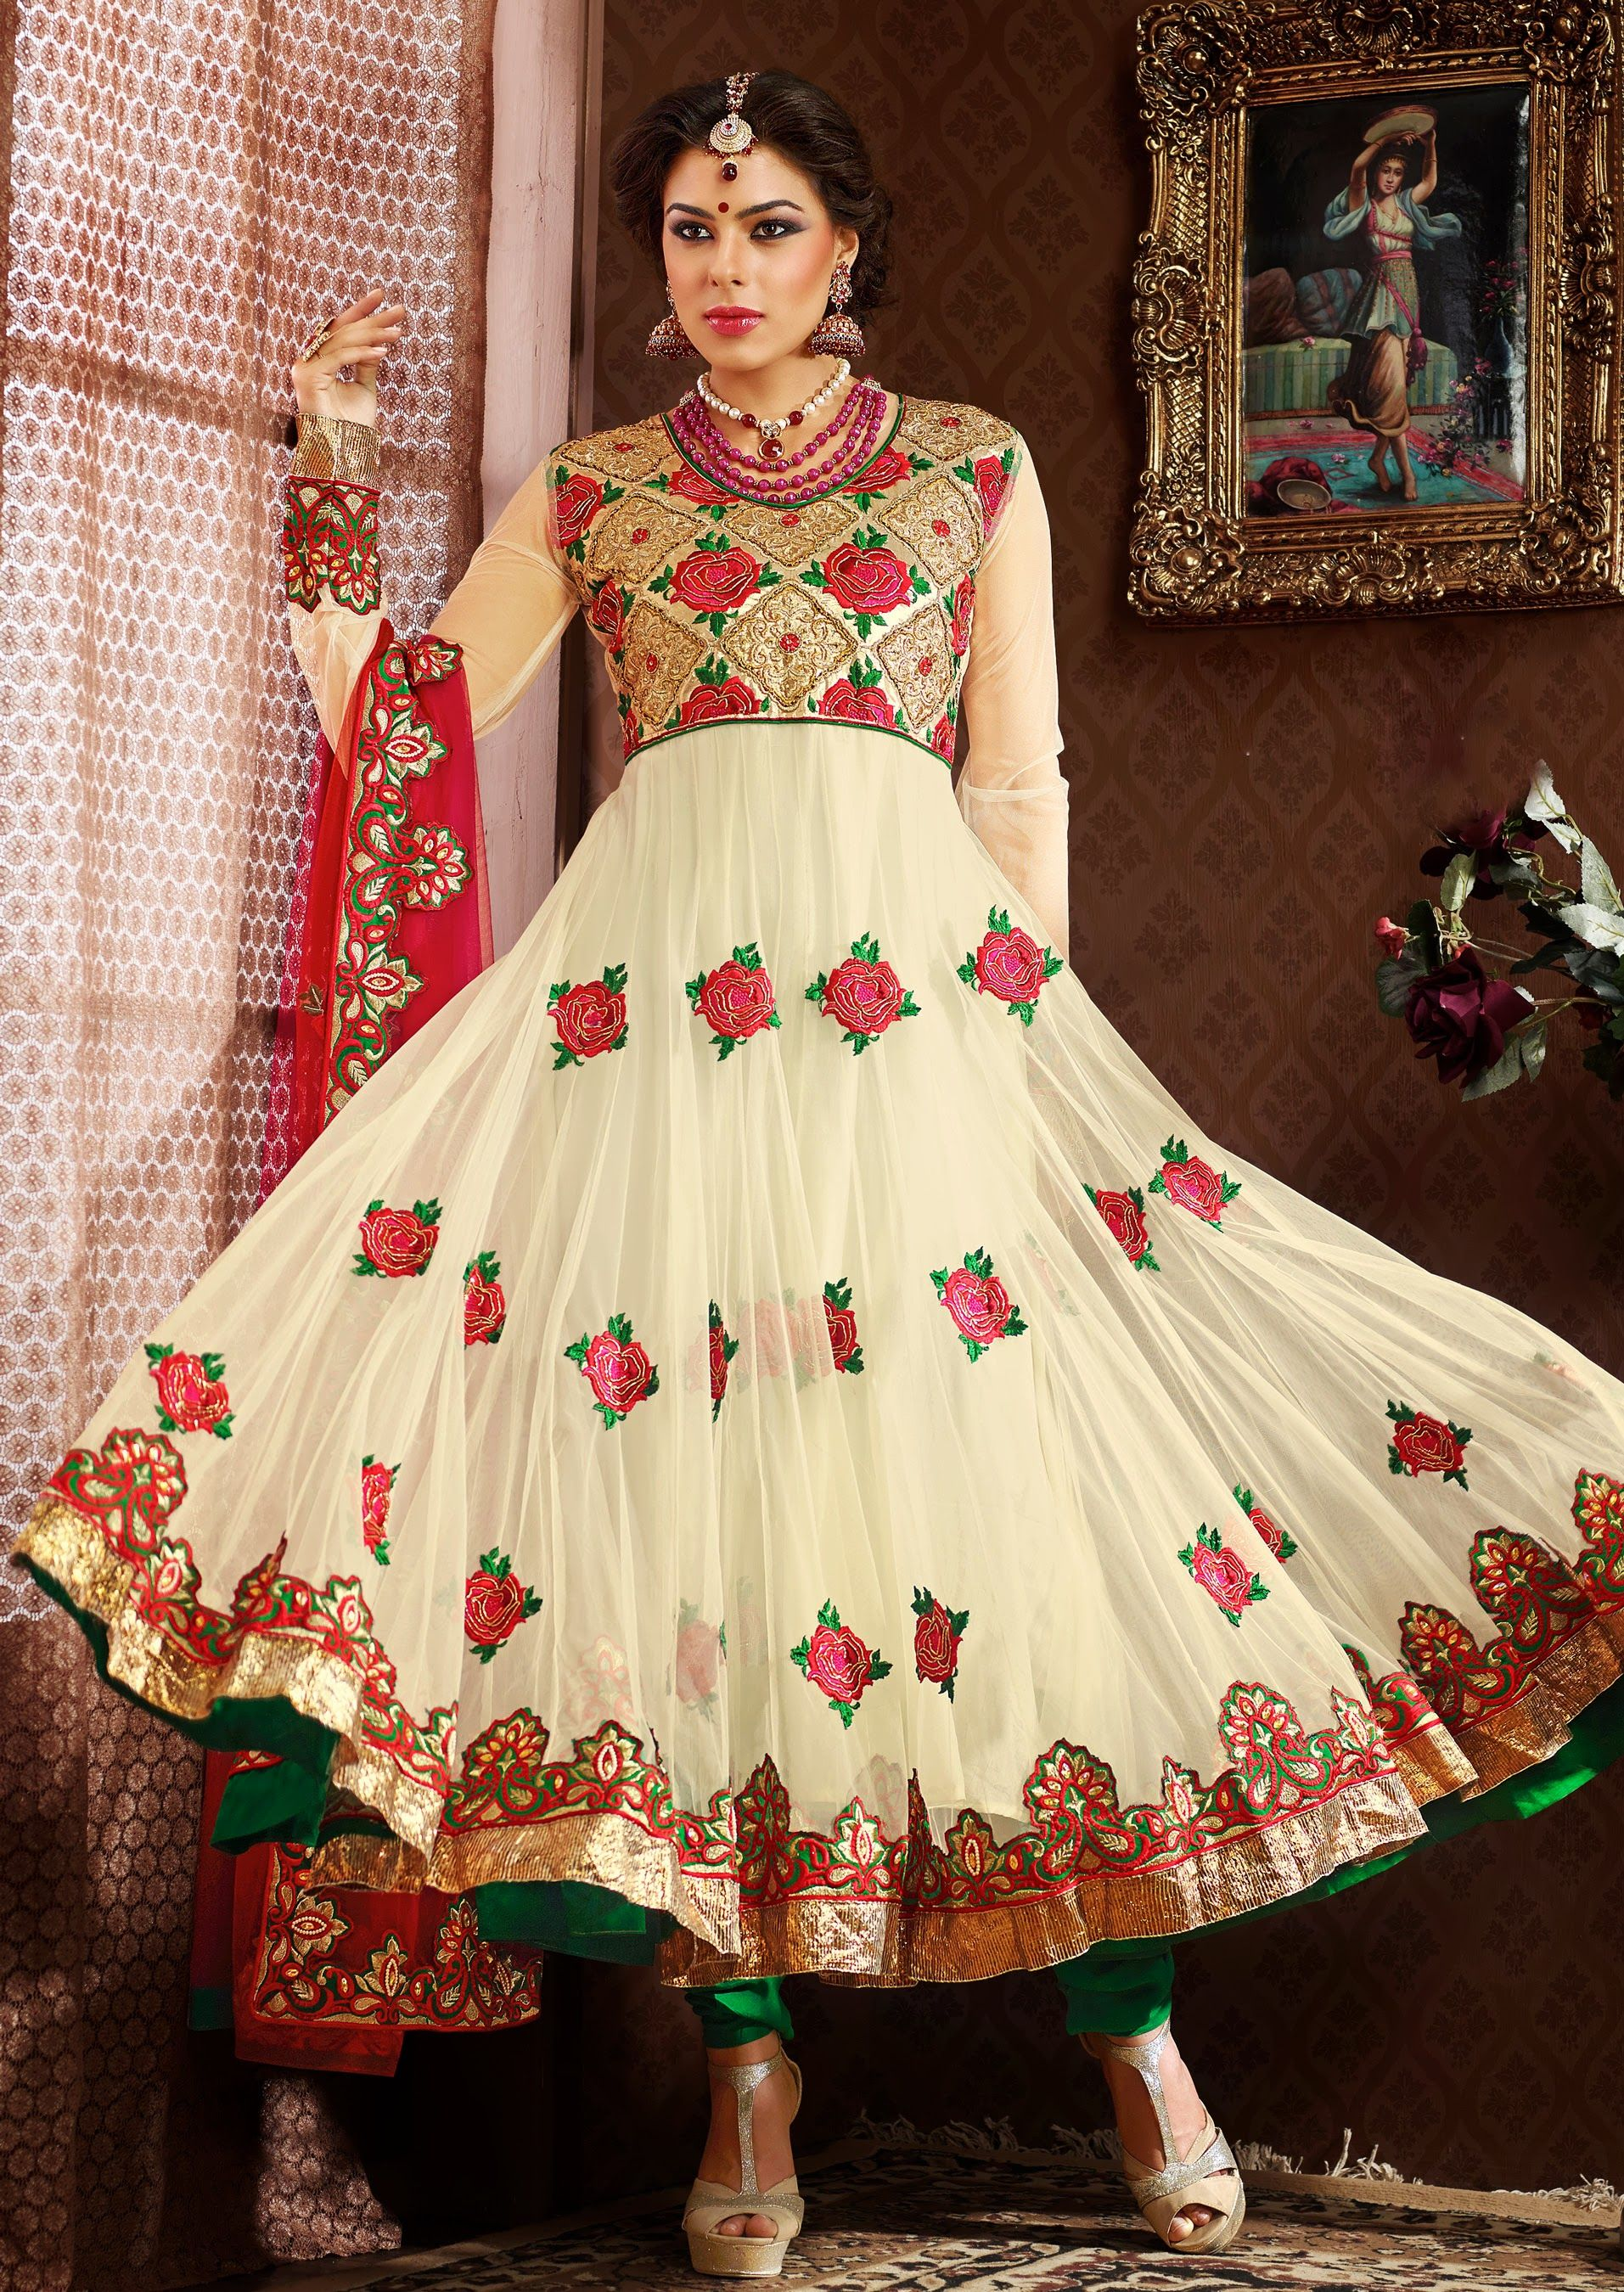 86bcead9f0 Design no> 1010 Price: 150 USD including free Delivery and stitching Color:  Kameez .... Cream Bottom.... Green Dupatta......Pink and Marron Fabric:  Kameez.